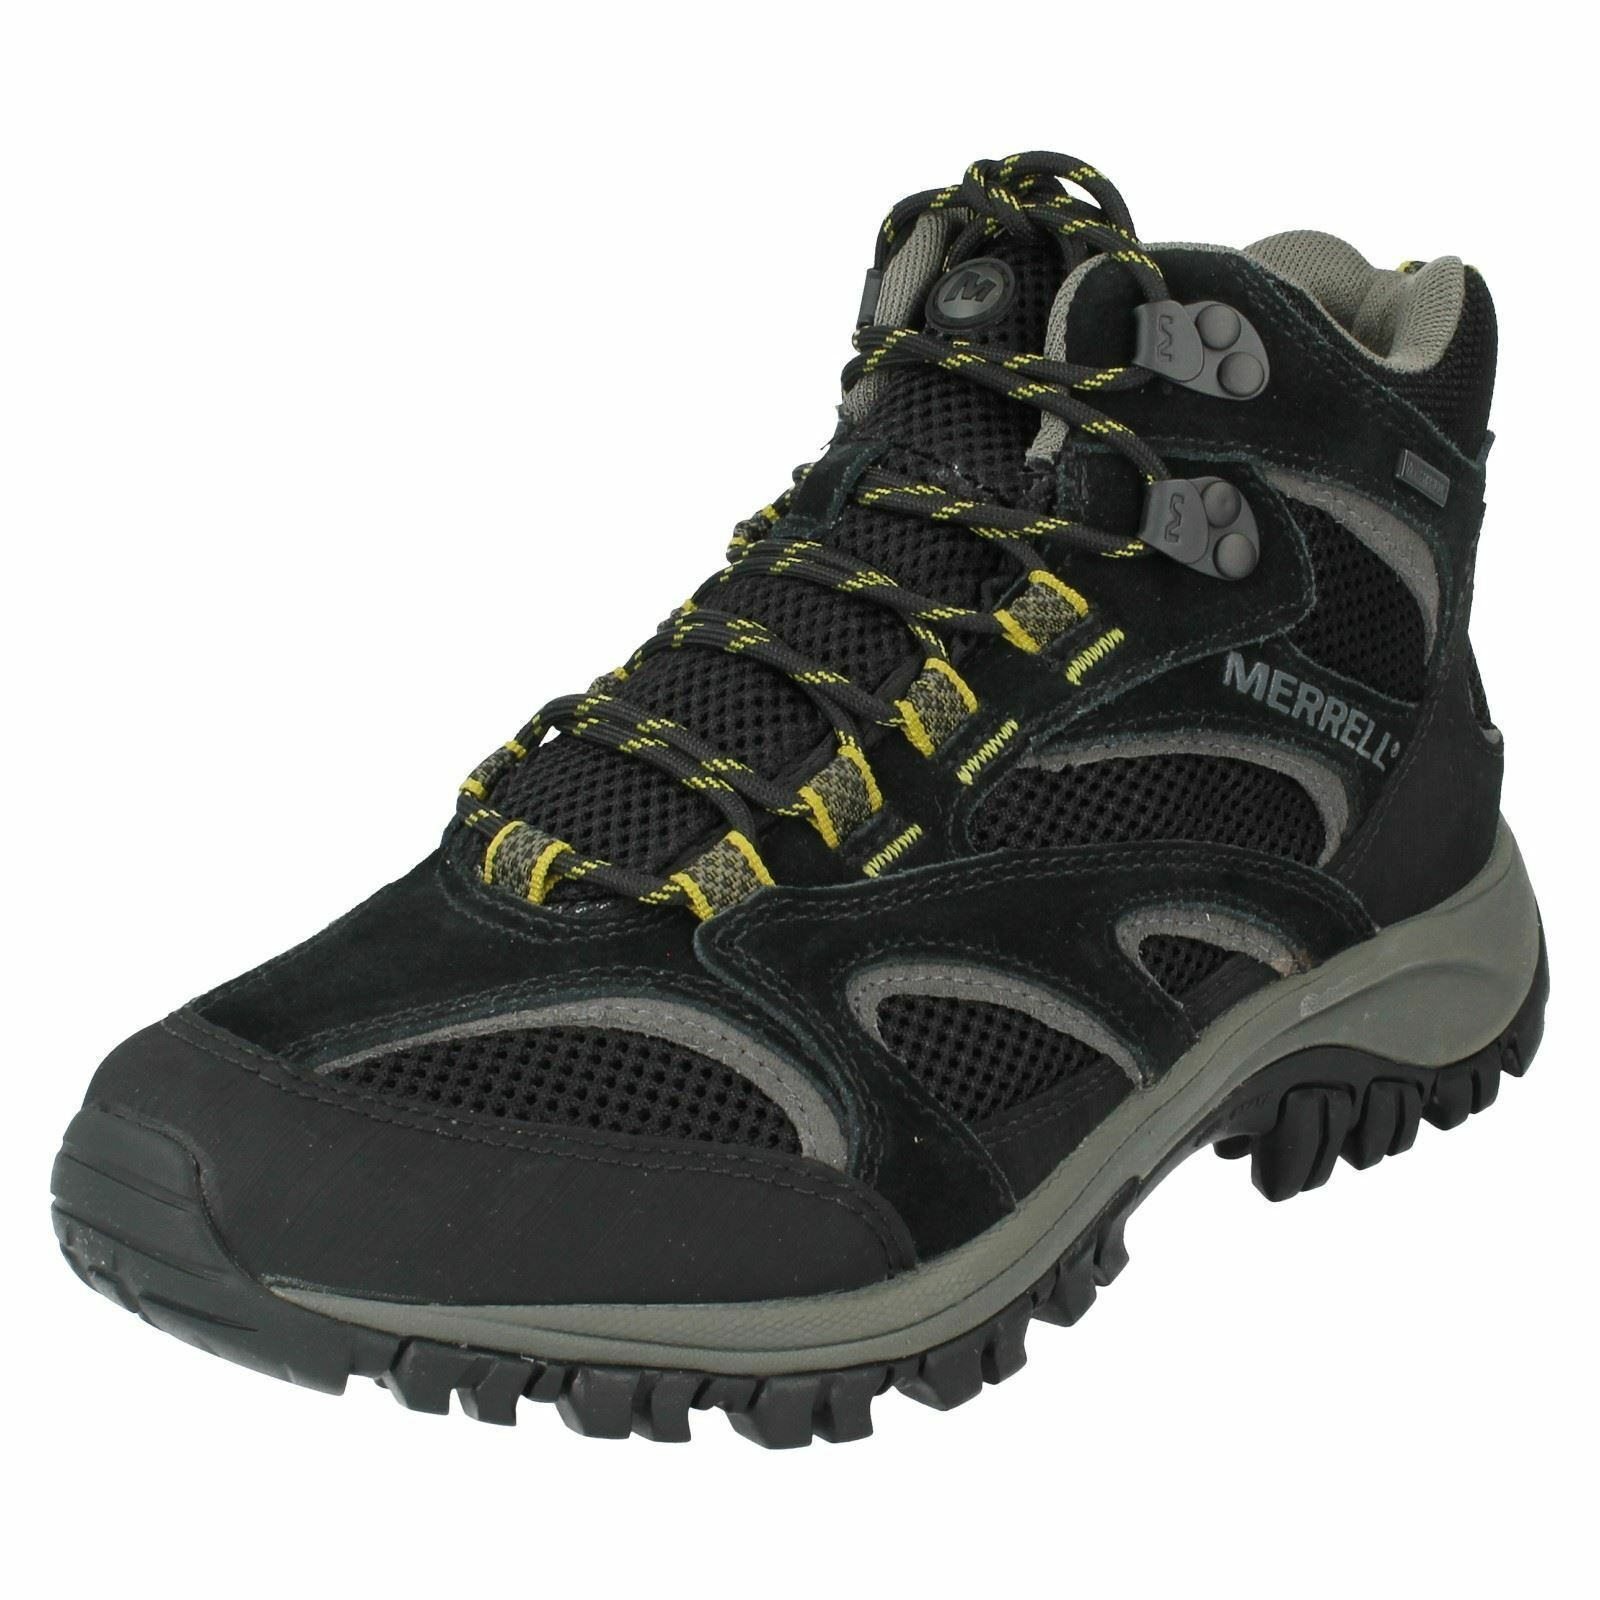 MERRELL MENS LACE UP WALKING HIKING LEATHER ANKLE Stiefel PHOENIX MID WATERPROOF